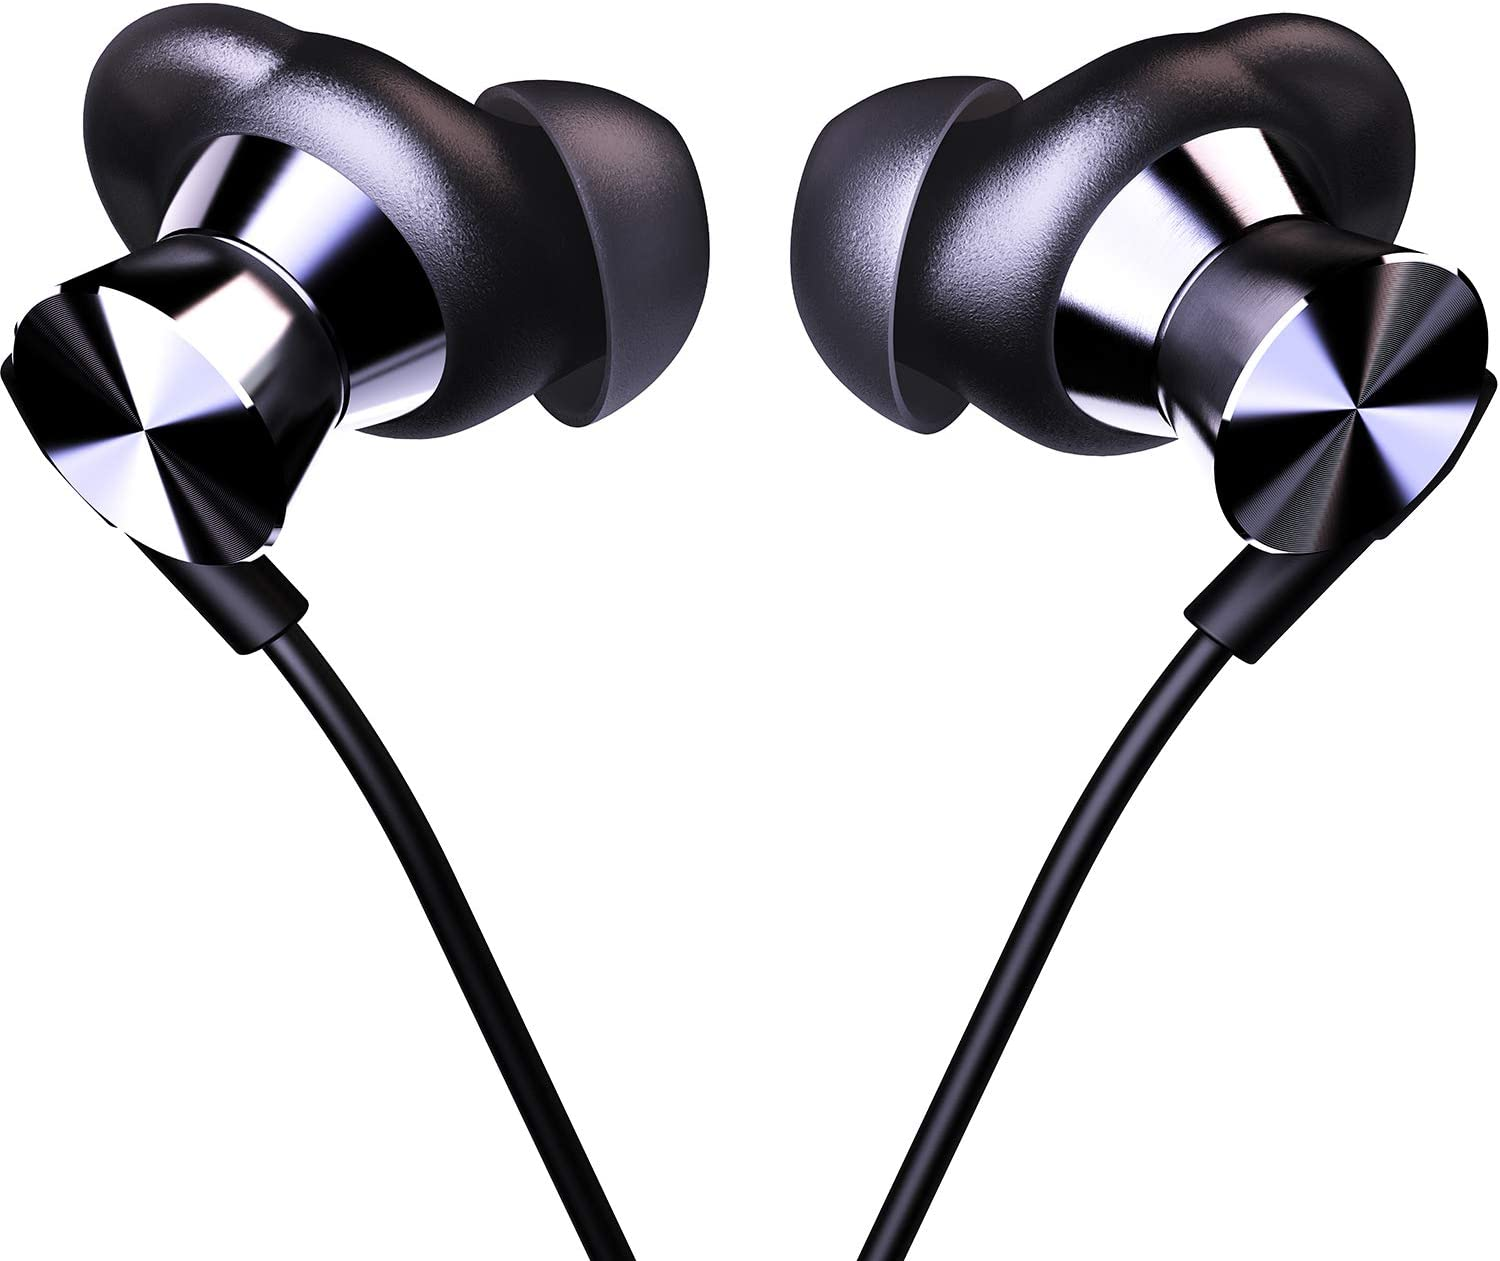 in Ear Headphones Wired Earbud with Line-in Microphone Heavy Bass Dynamic Driver Earphones with Non Tangle Fabric Braid for Running Gym Android Phones Music Player Dark Chrome E58